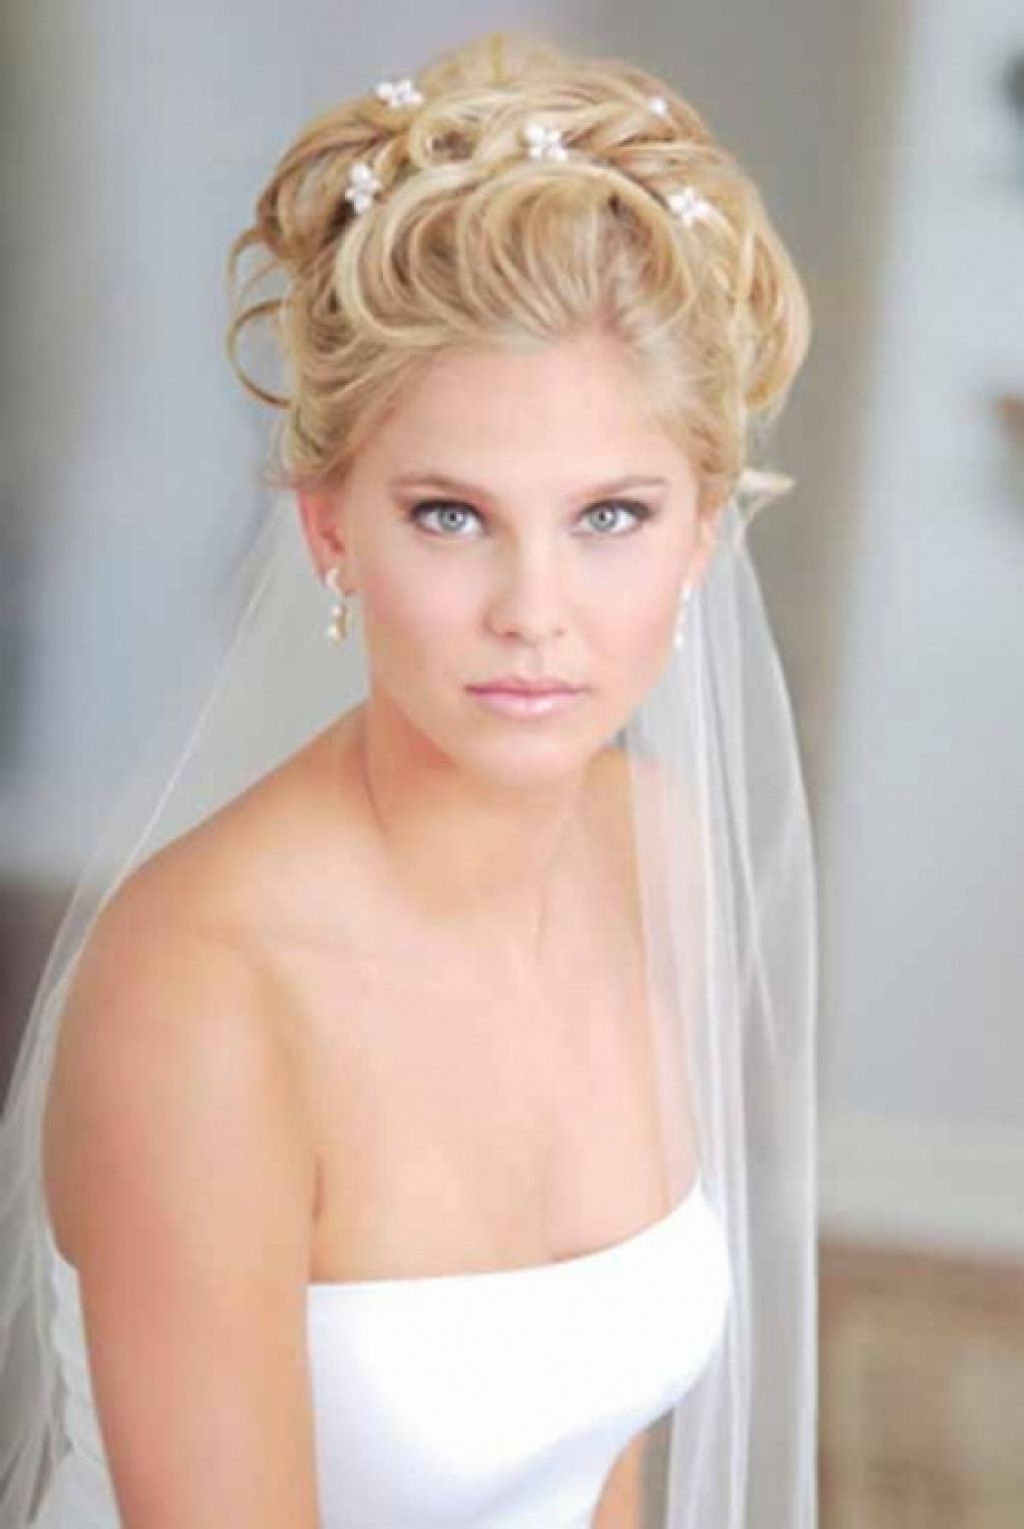 Ideas Breathtaking Short Wedding Hairstyles For Natural Black Intended For Popular Wedding Hairstyles For Short Hair With Veil (Gallery 3 of 15)